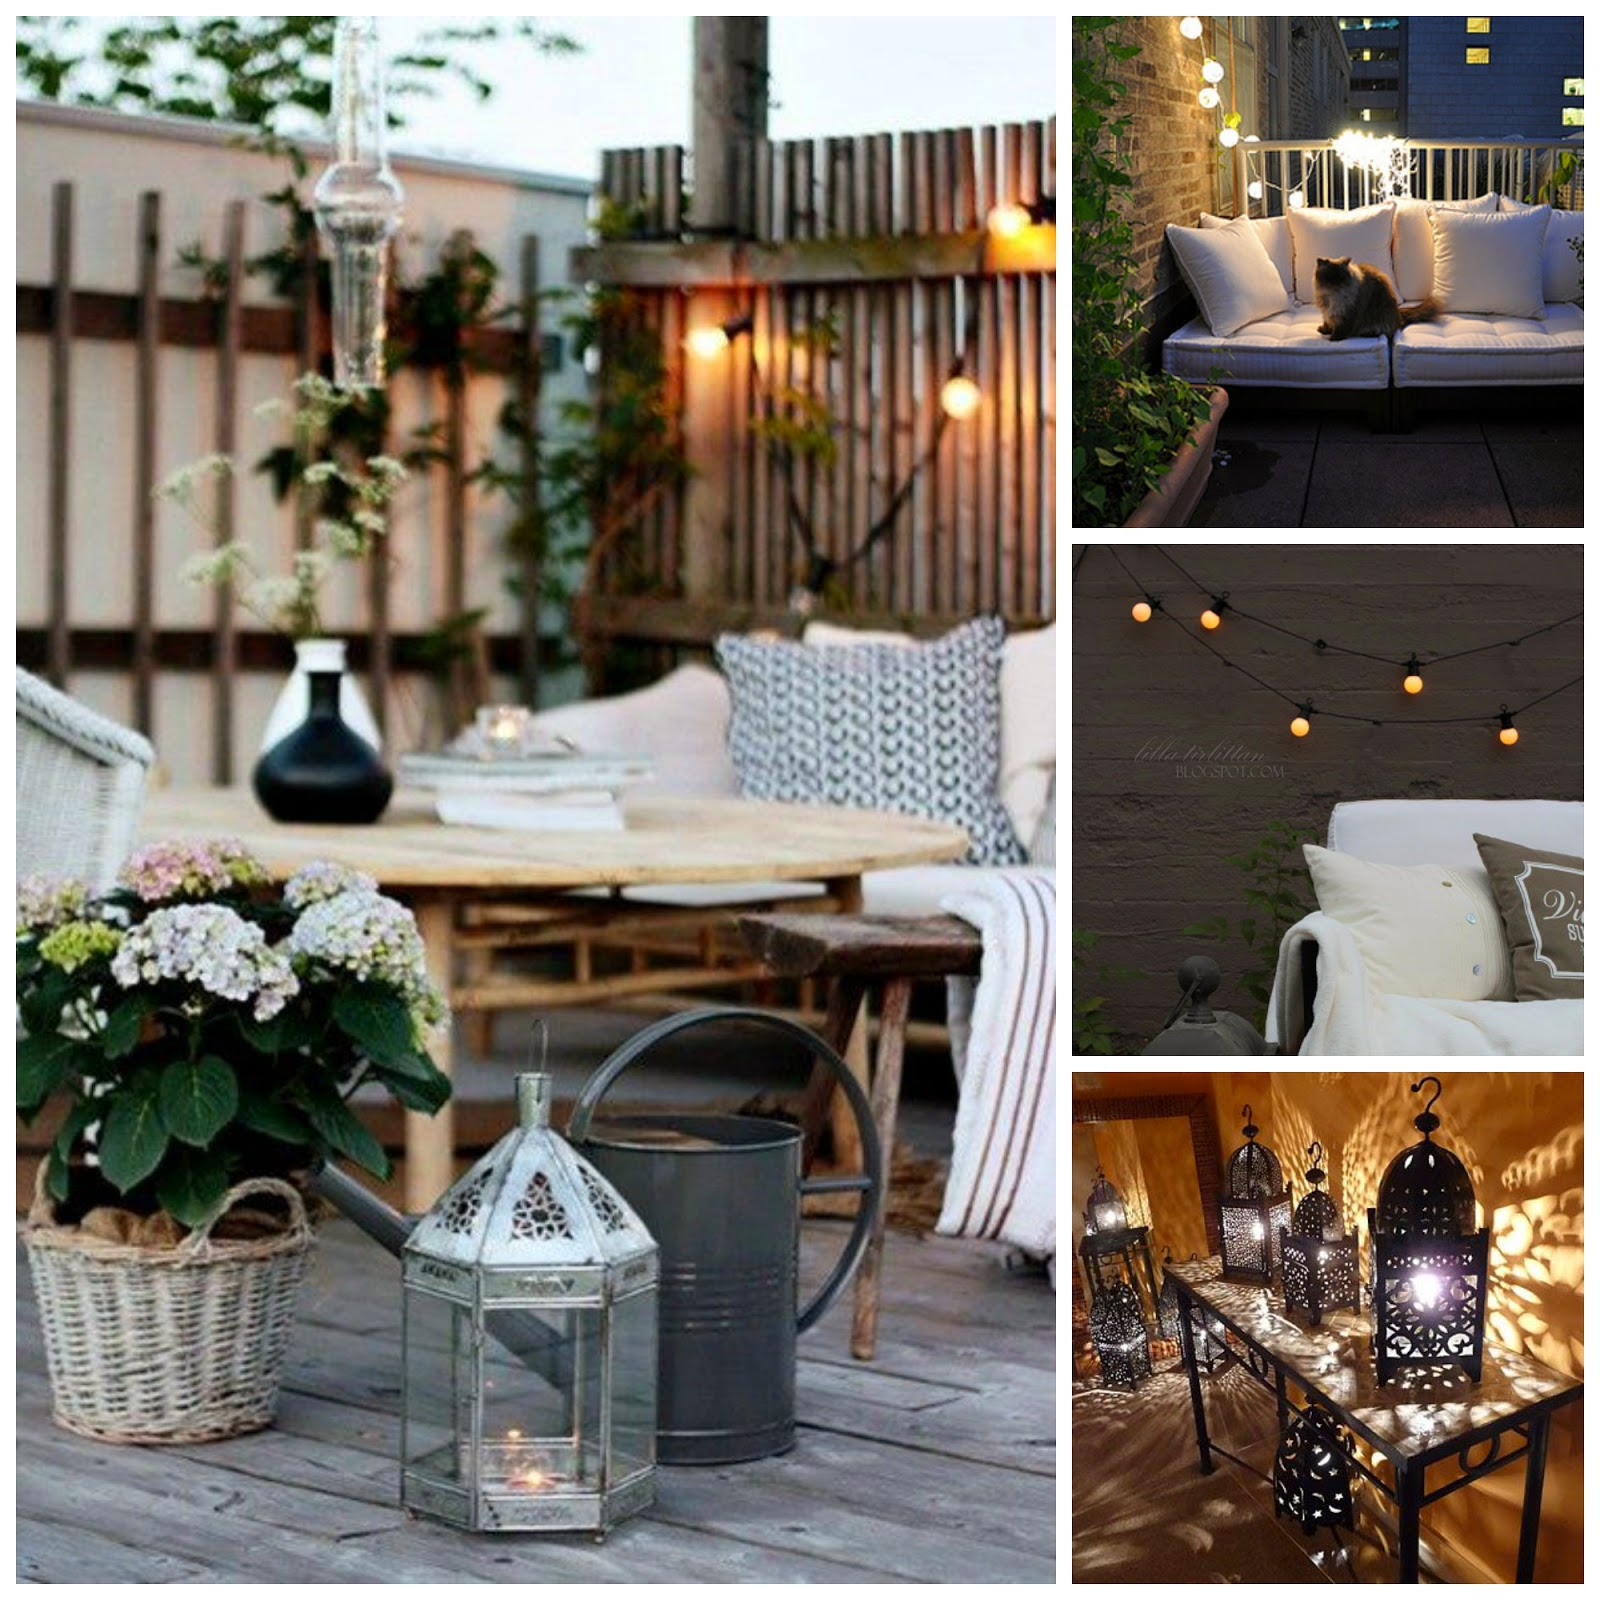 Magnolia styles 5 steps to decorate your small balcony or for Decorate your balcony